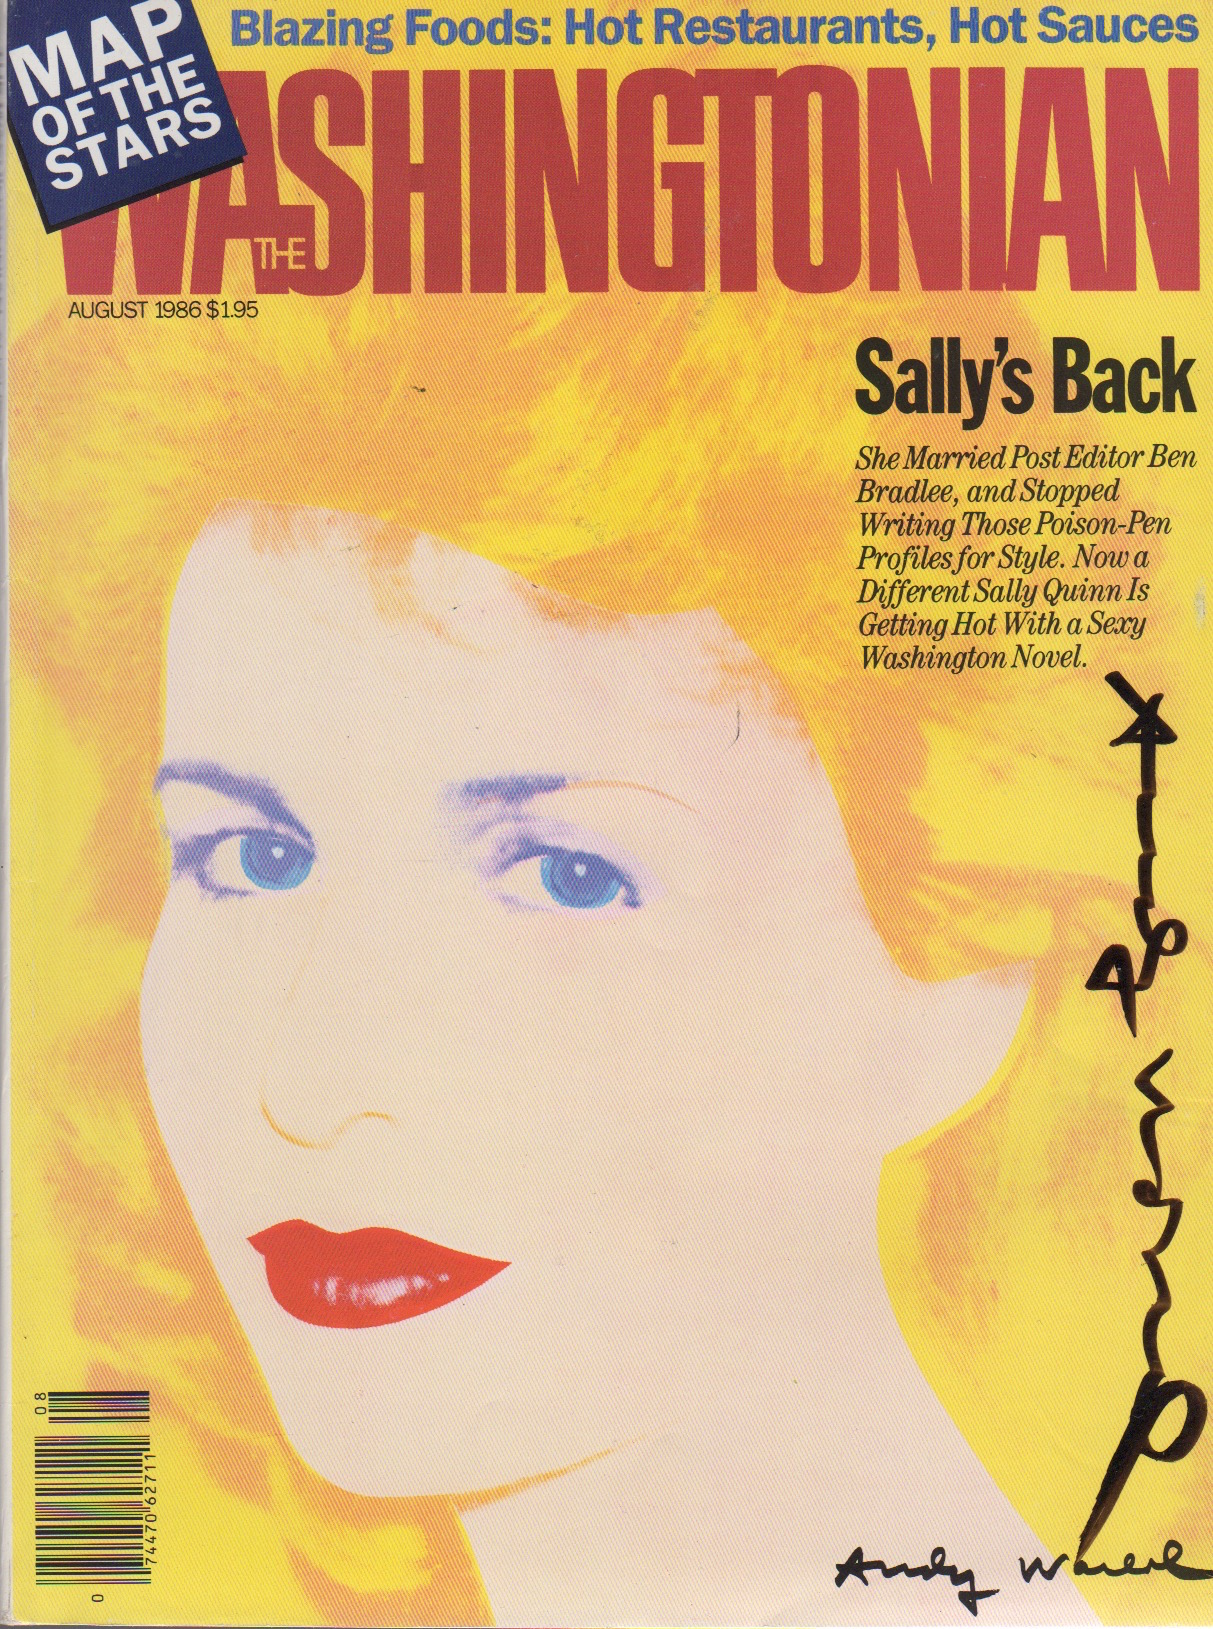 THE WASHINGTONIAN (AUGUST 1986) [SIGNED]. Andy Warhol.